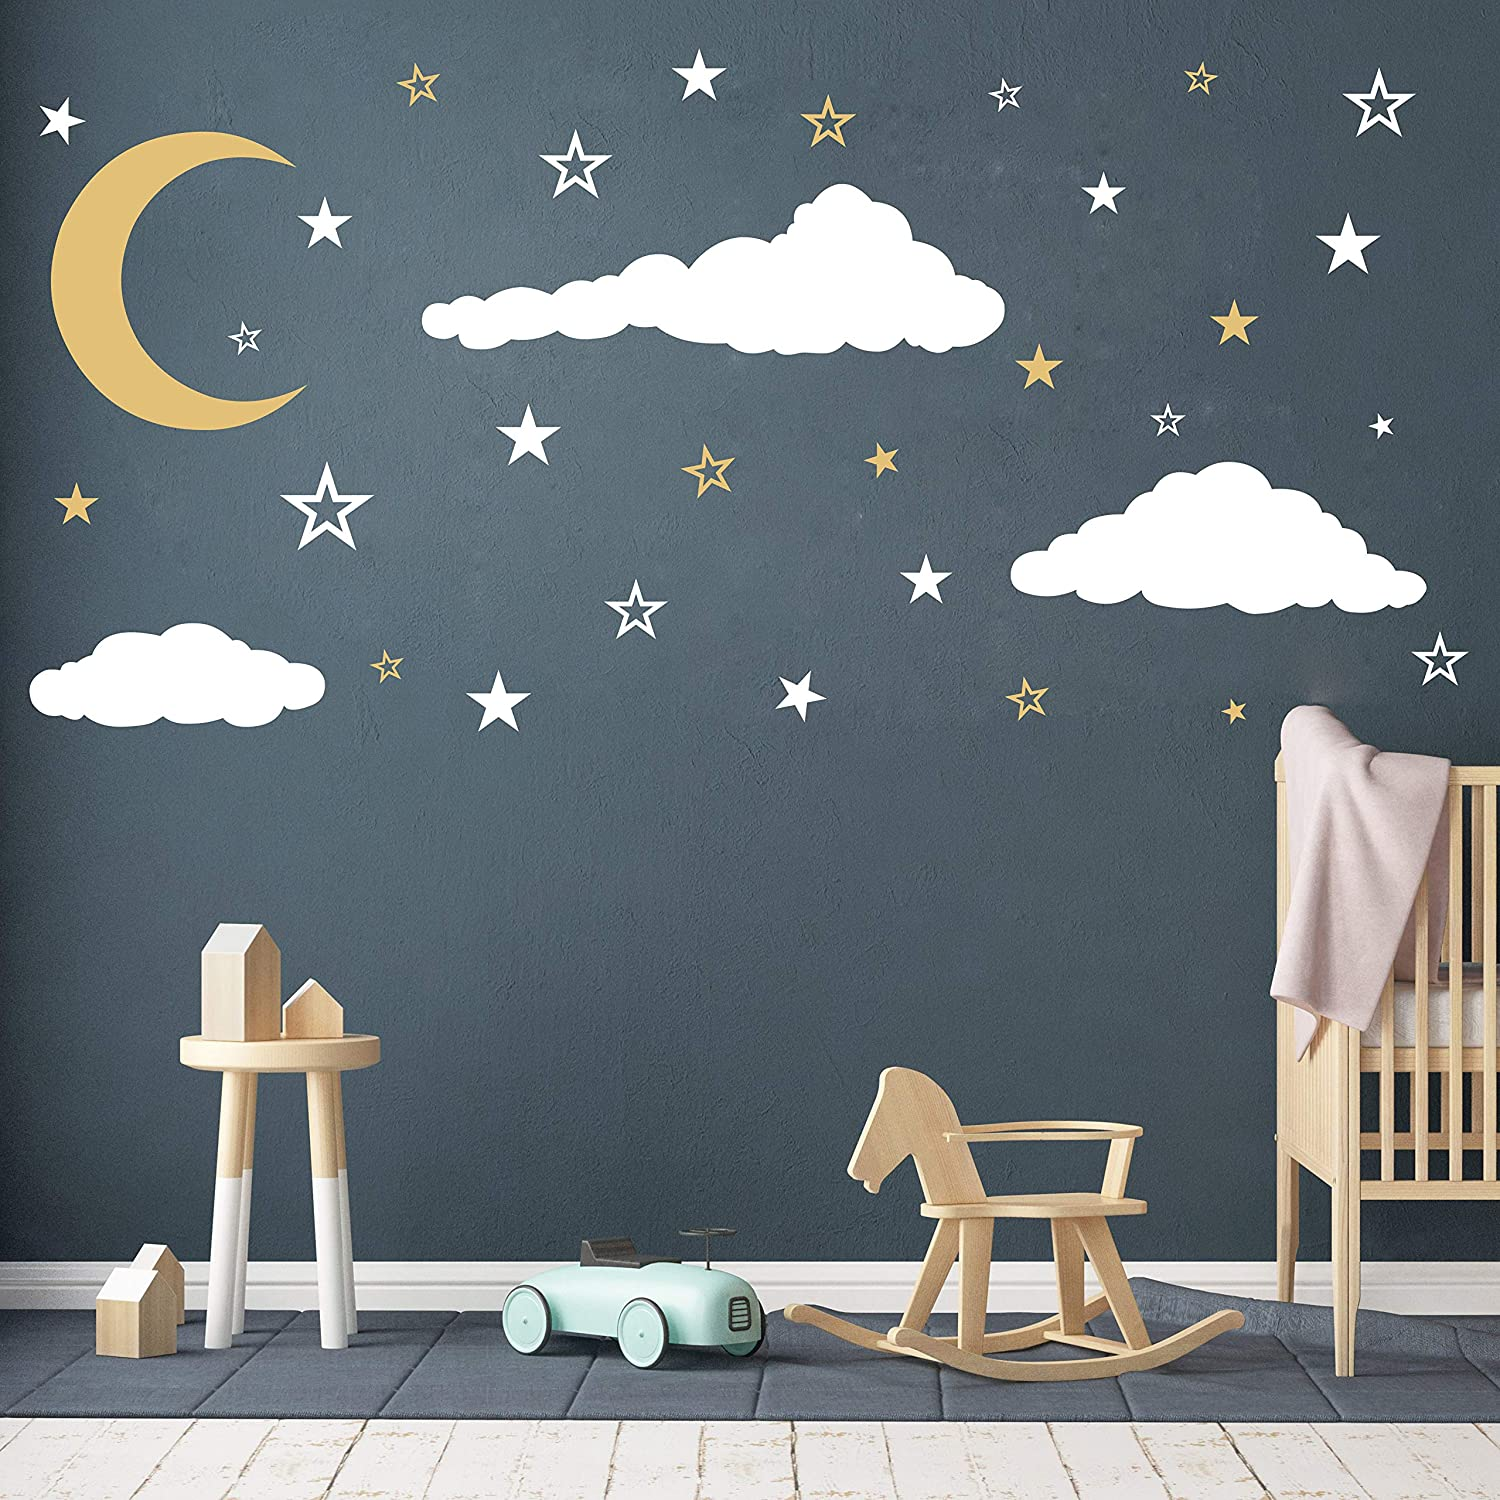 Moon Stars And Clouds Wall Decals Kids Wall Decoration Nursery Wall Decal Wall Decal For Nursery Vinyl Wall Stickers For Children Baby Kids Boys